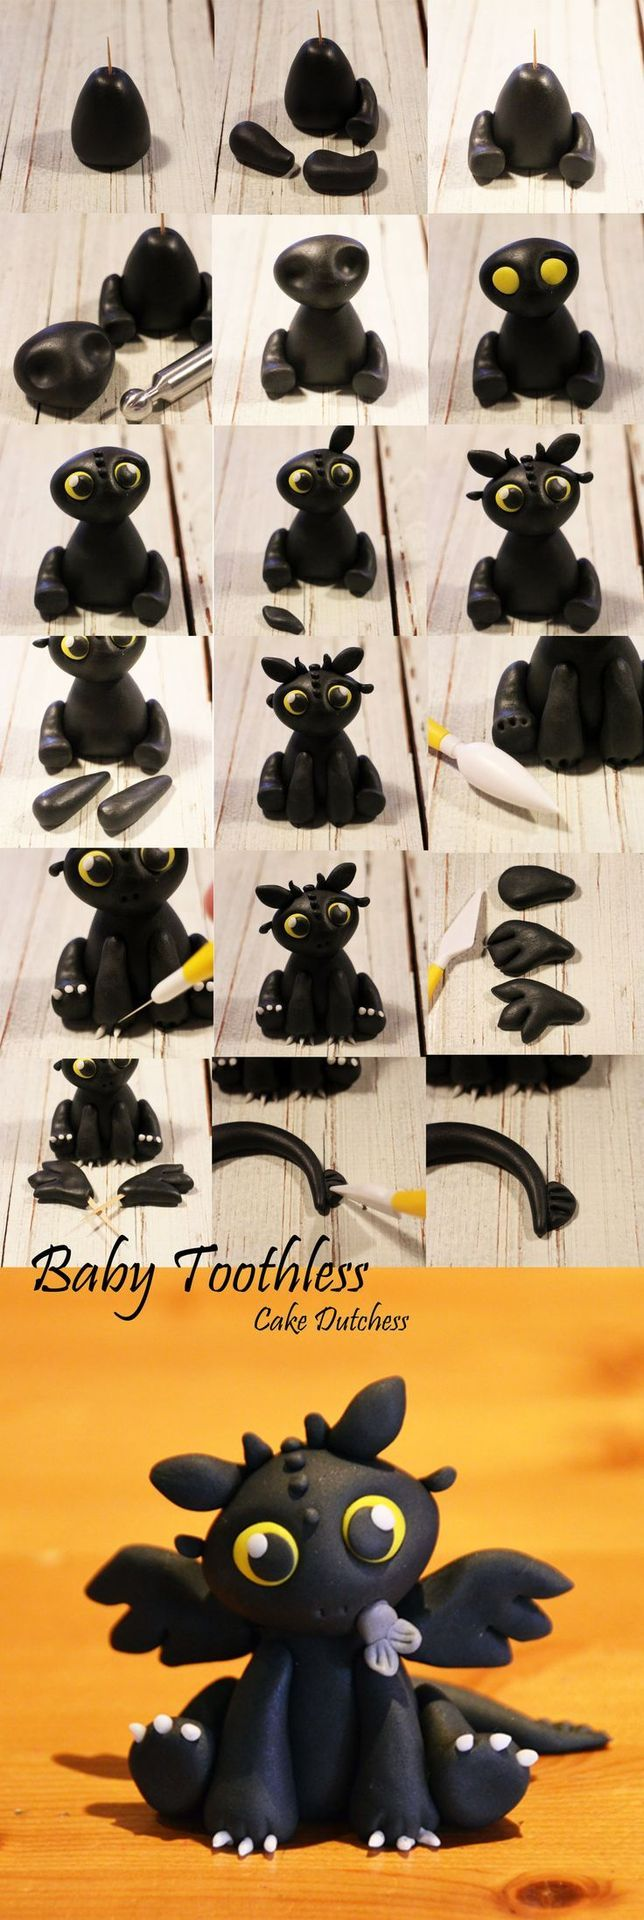 Baby Toothless Tutorial by Naera the Cake Dutchess. How To Train Your Dragon I can have baby toothless now??